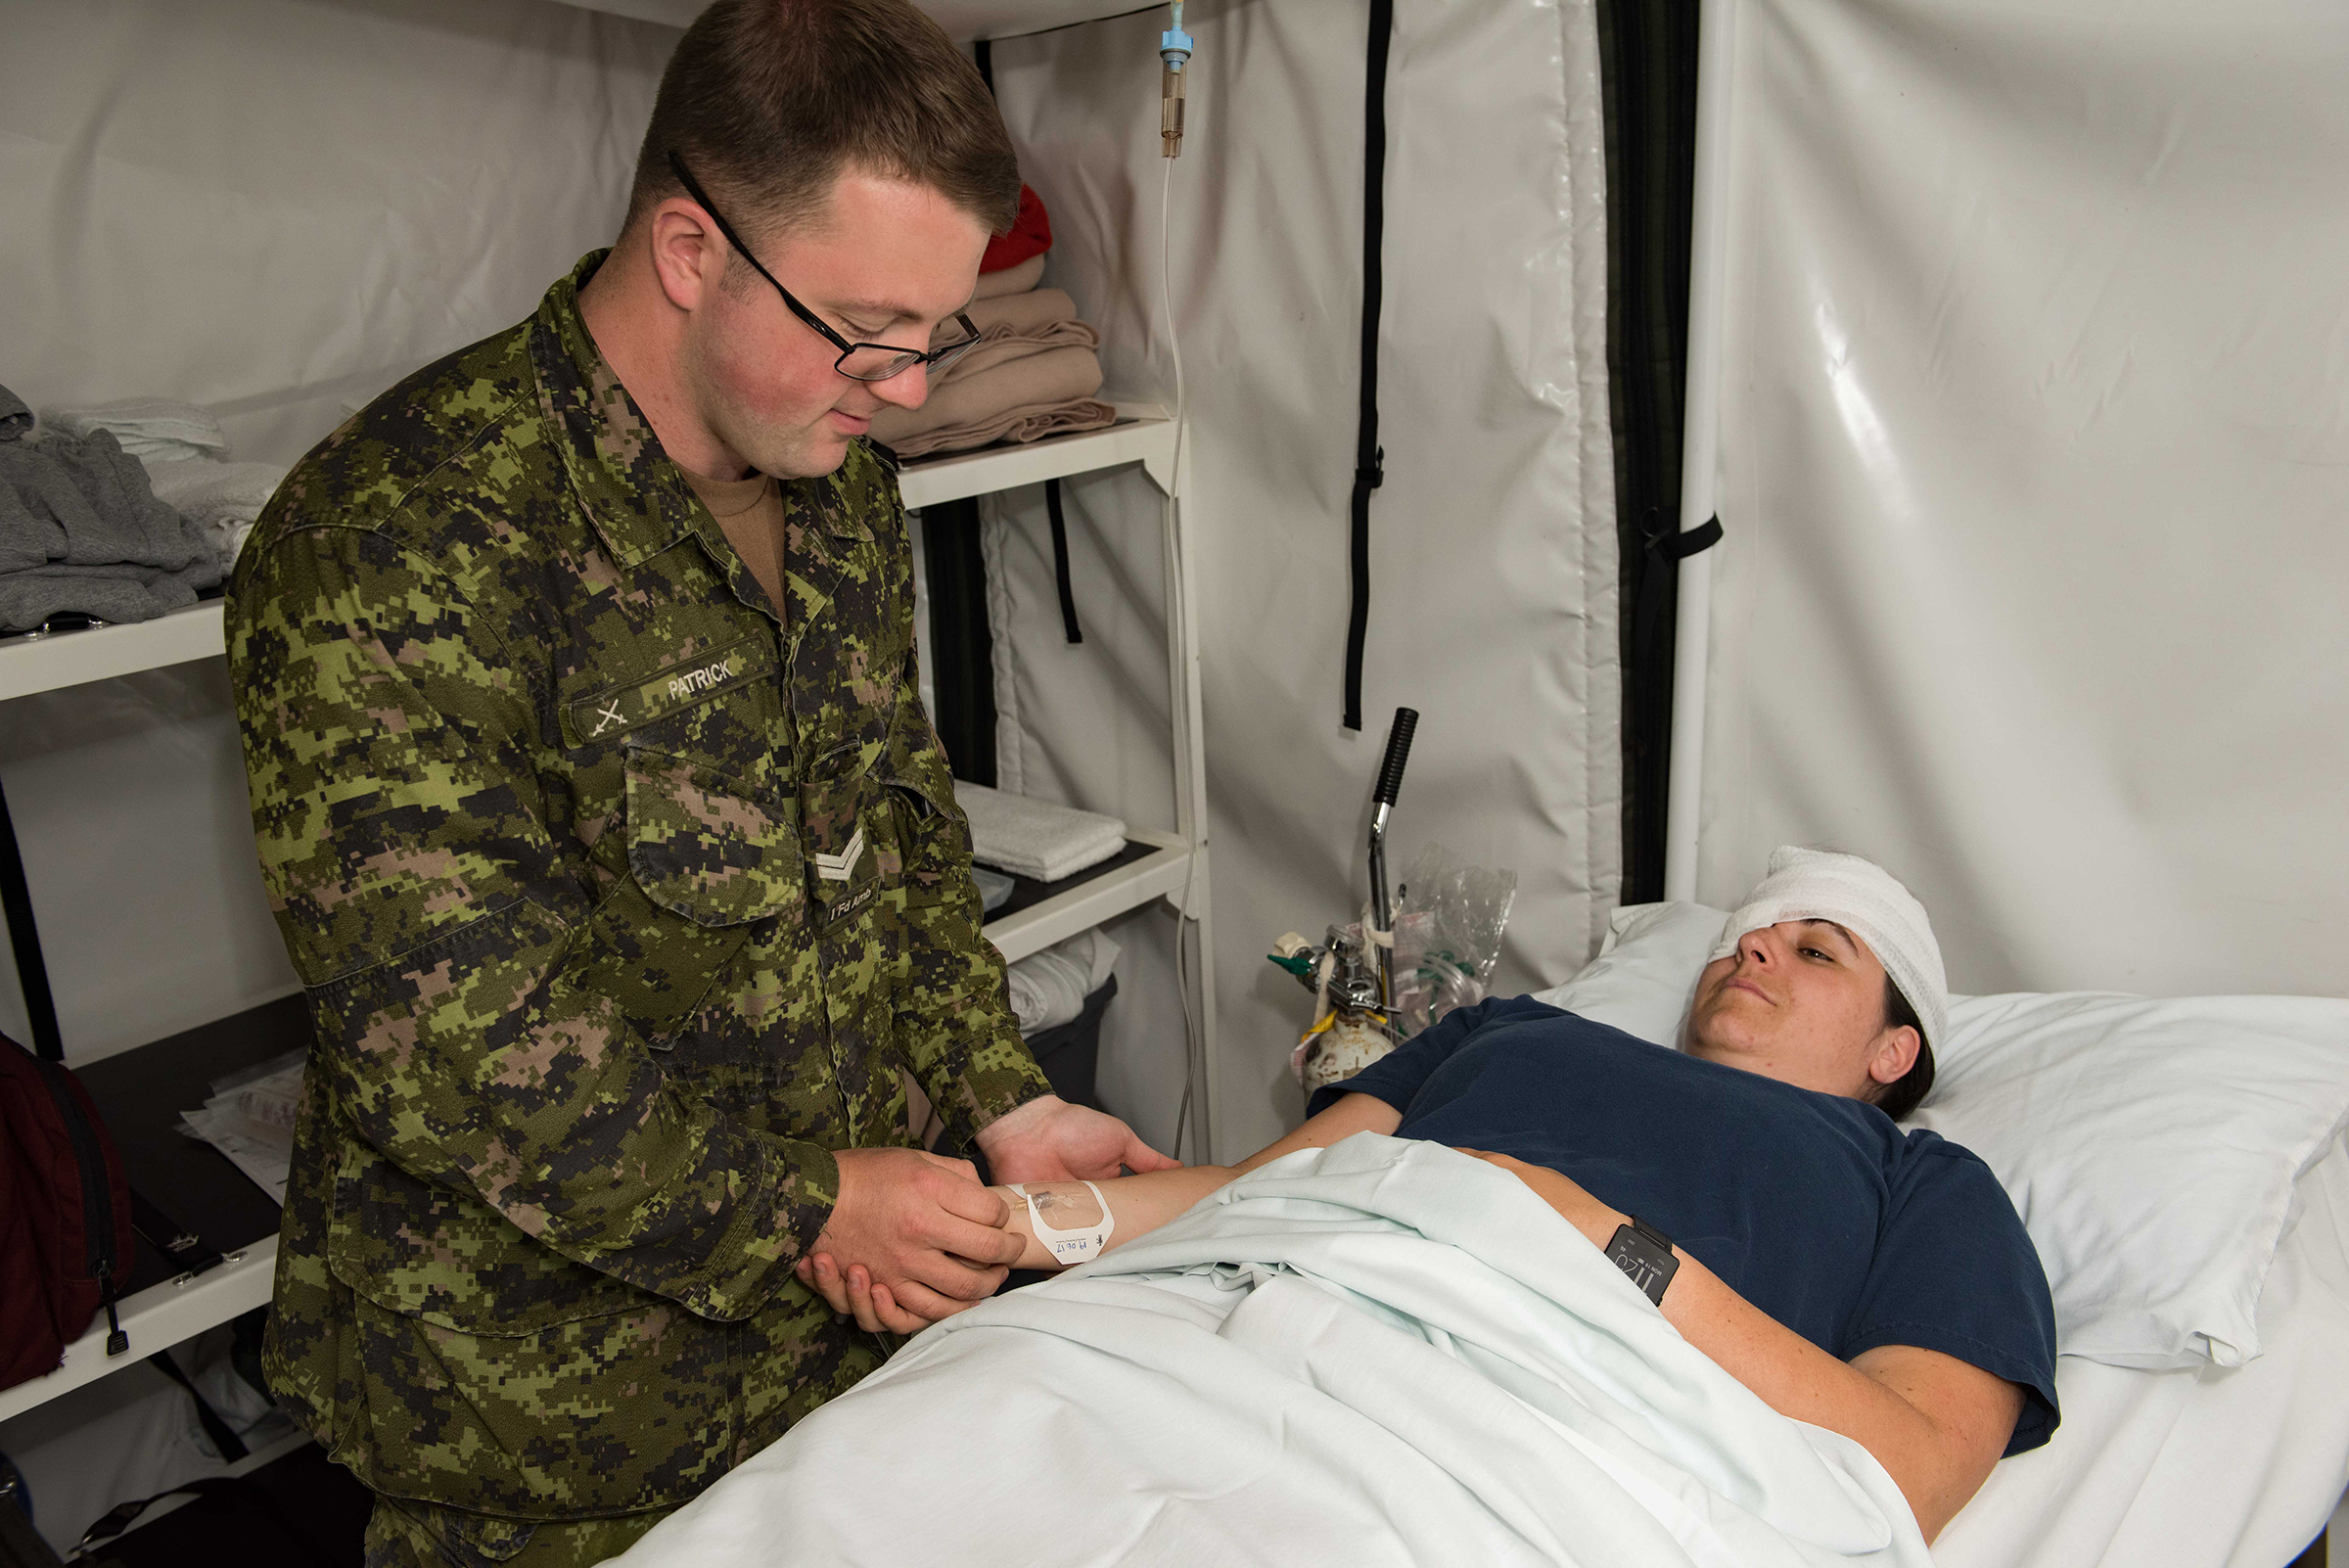 Corporal Sean Patrick, a medical technician with 1 Field Ambulance in Edmonton, Alberta, checks the intravenous fluid of a simulated patient (Corporal Sophie Renaud) in a Mobile Medical Field Hospital during Exercise Maple Flag 50 at 4 Wing Cold Lake on June 19, 2017. PHOTO: Master Corporal Heather MacRae, CK05-2017-0470-004